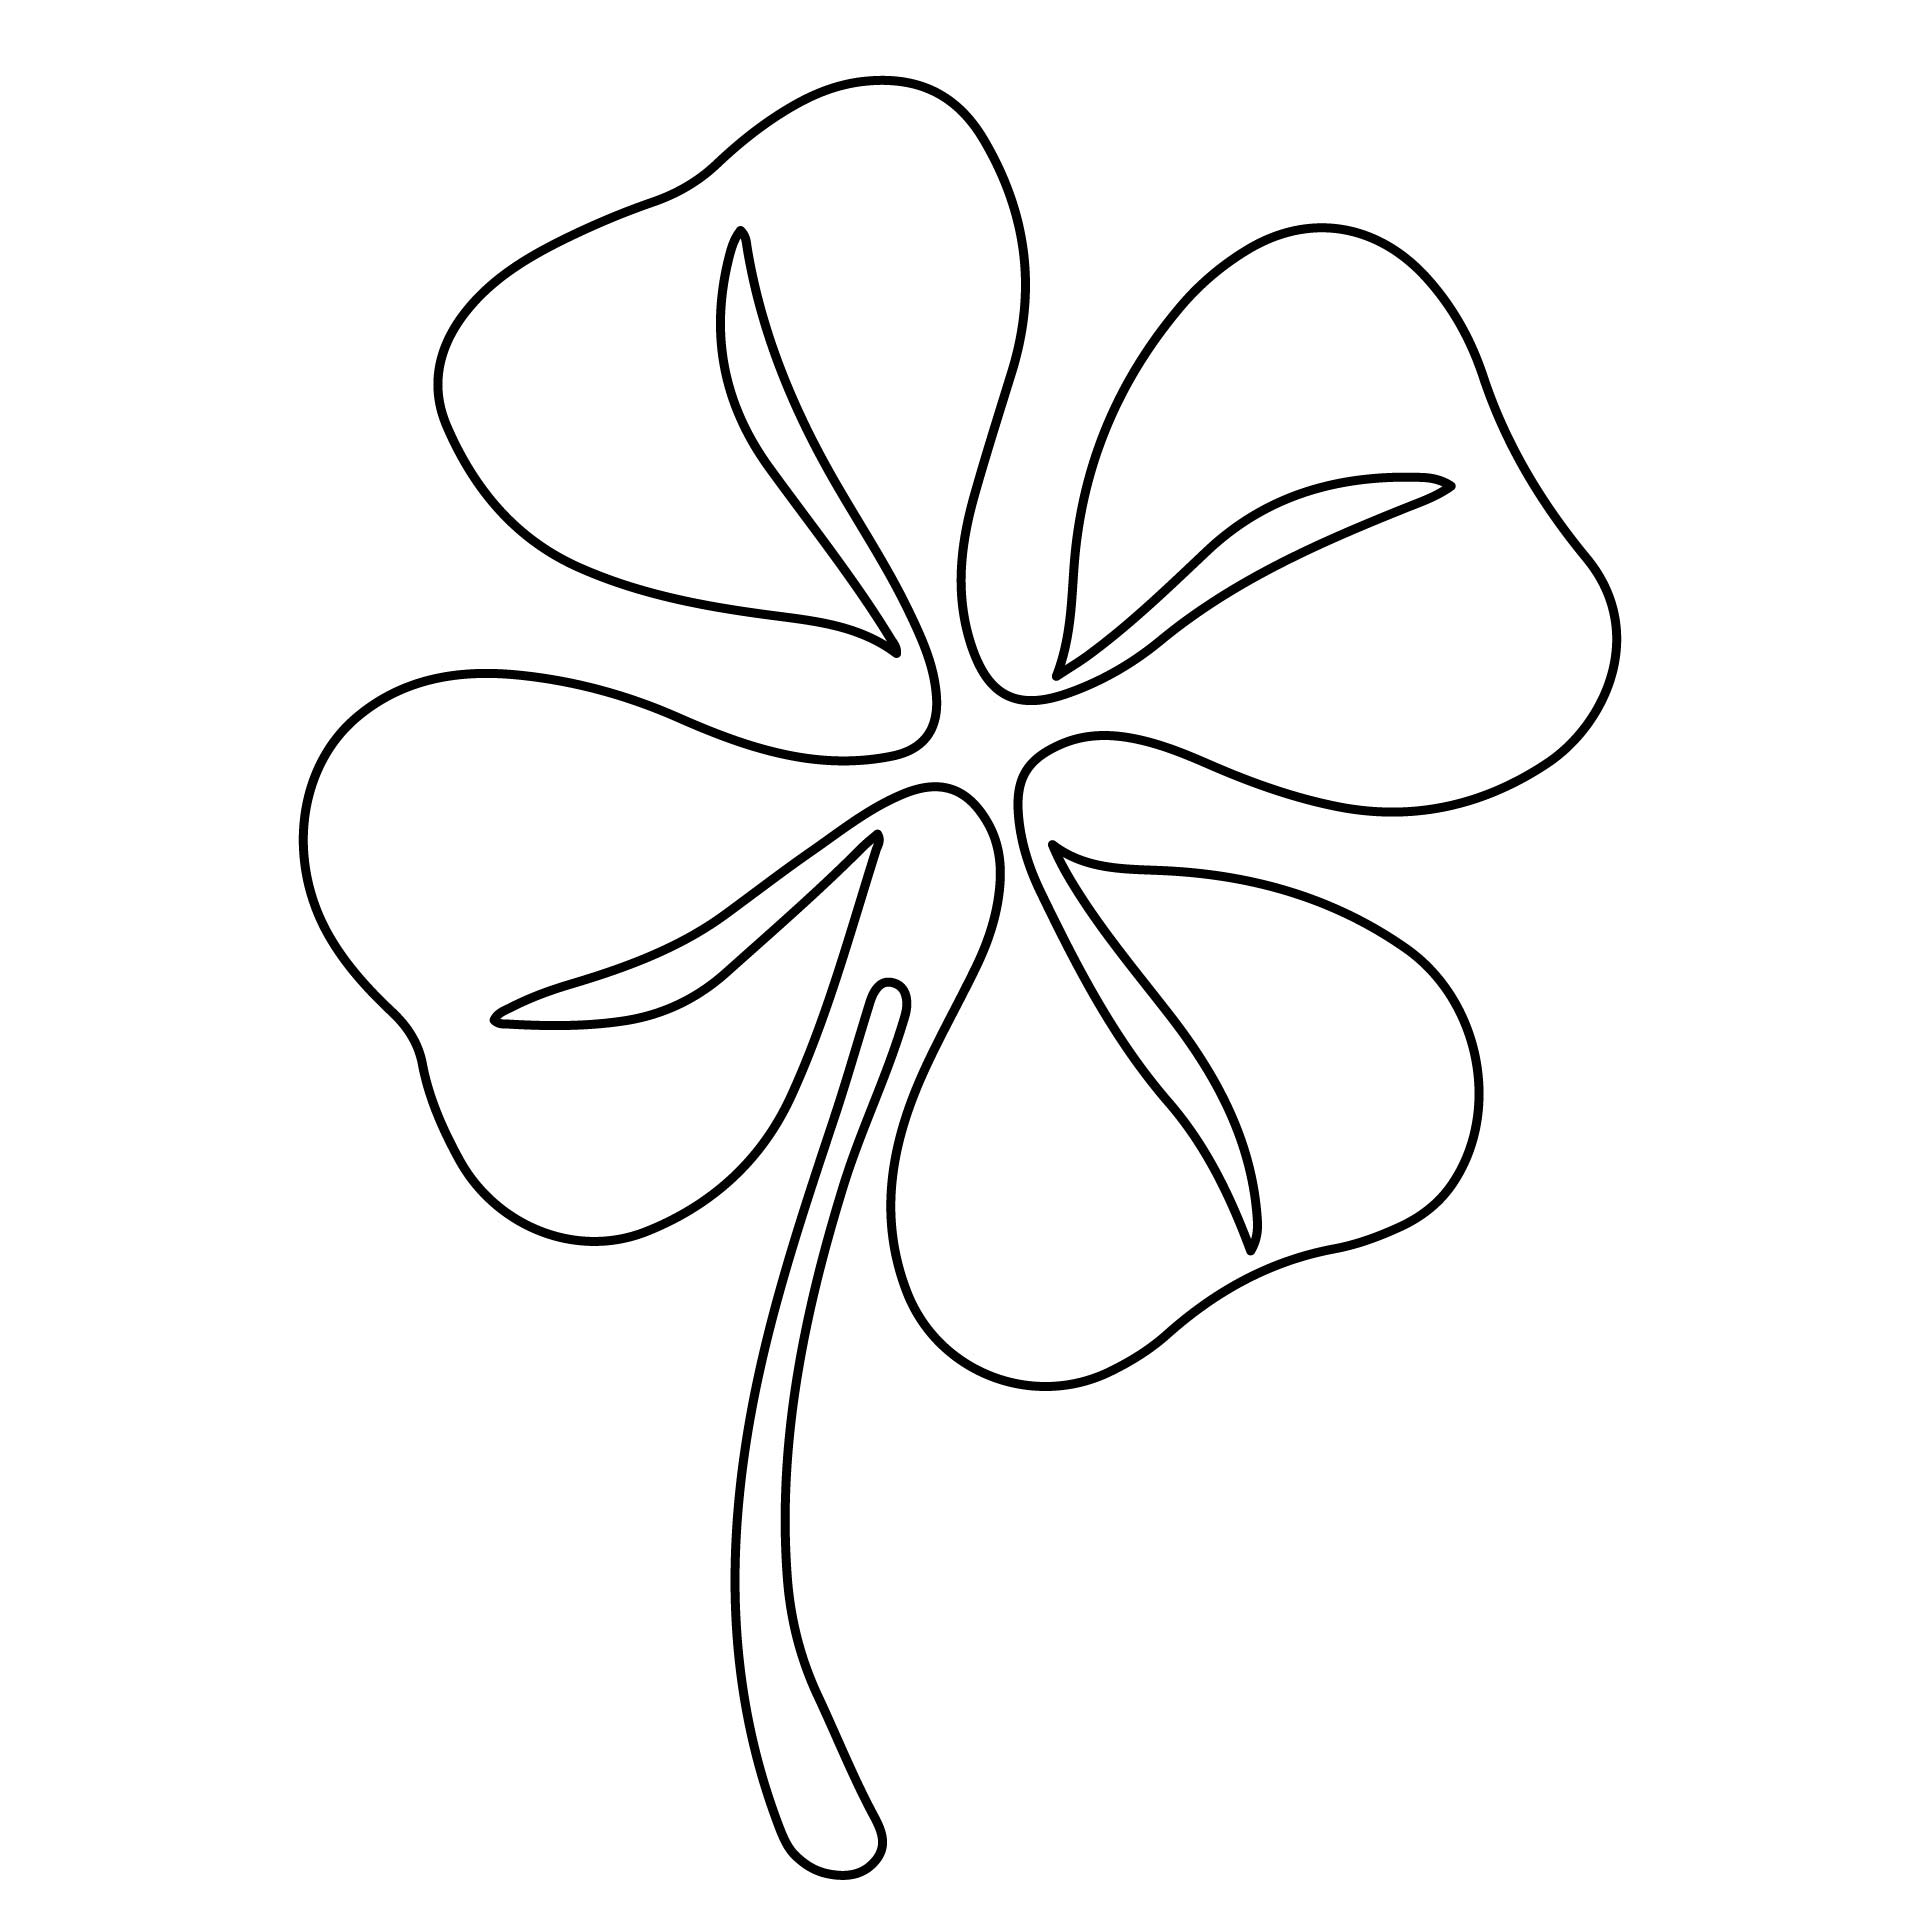 5 best images of free printable shamrock cutouts for Shamrock cut out template